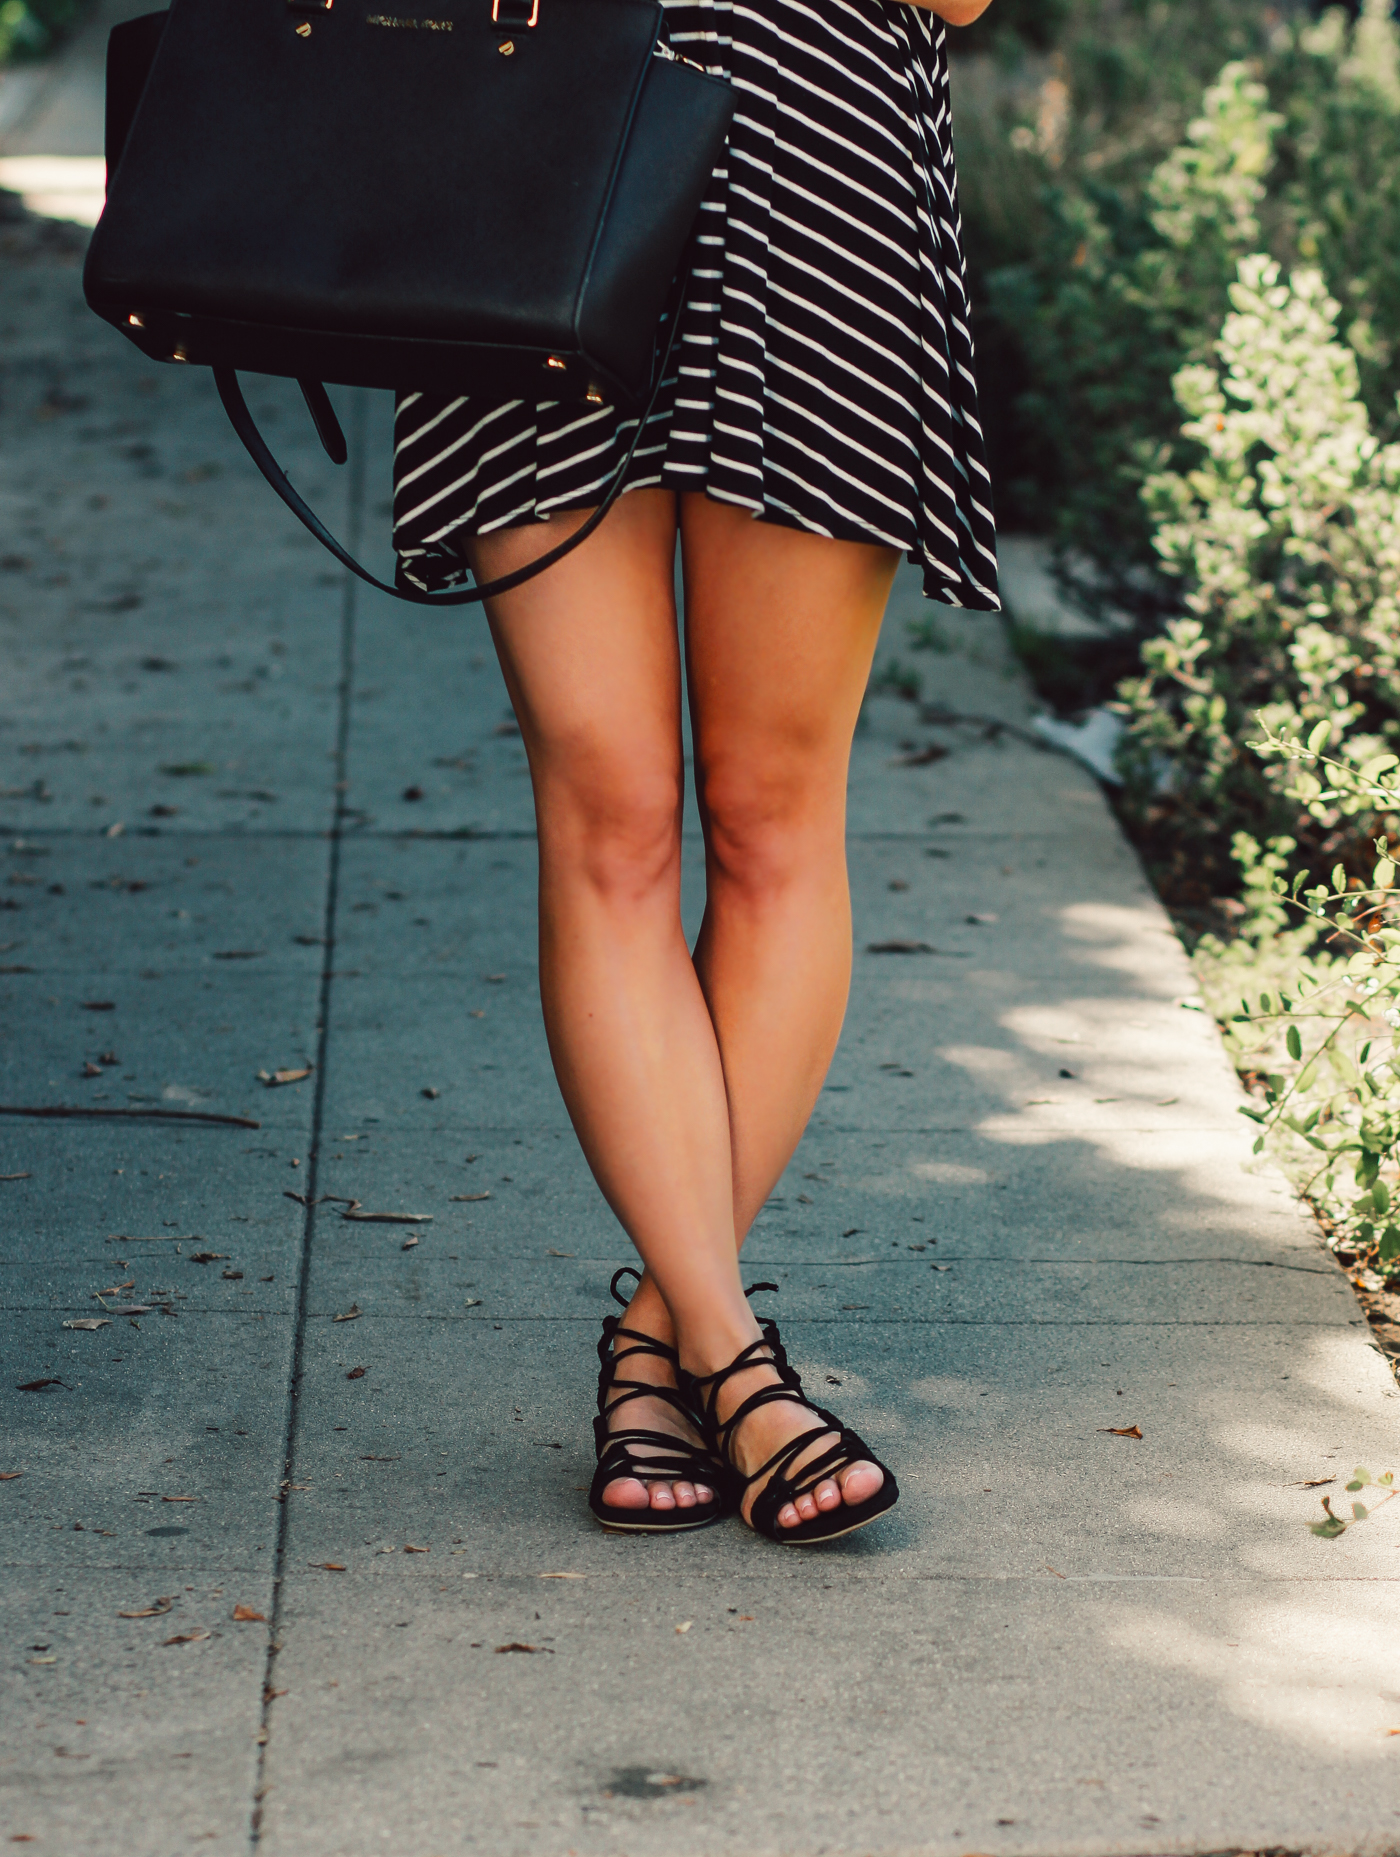 Blondie in the City | Black & White Striped Babydoll Dress | Black Lace Up Flats